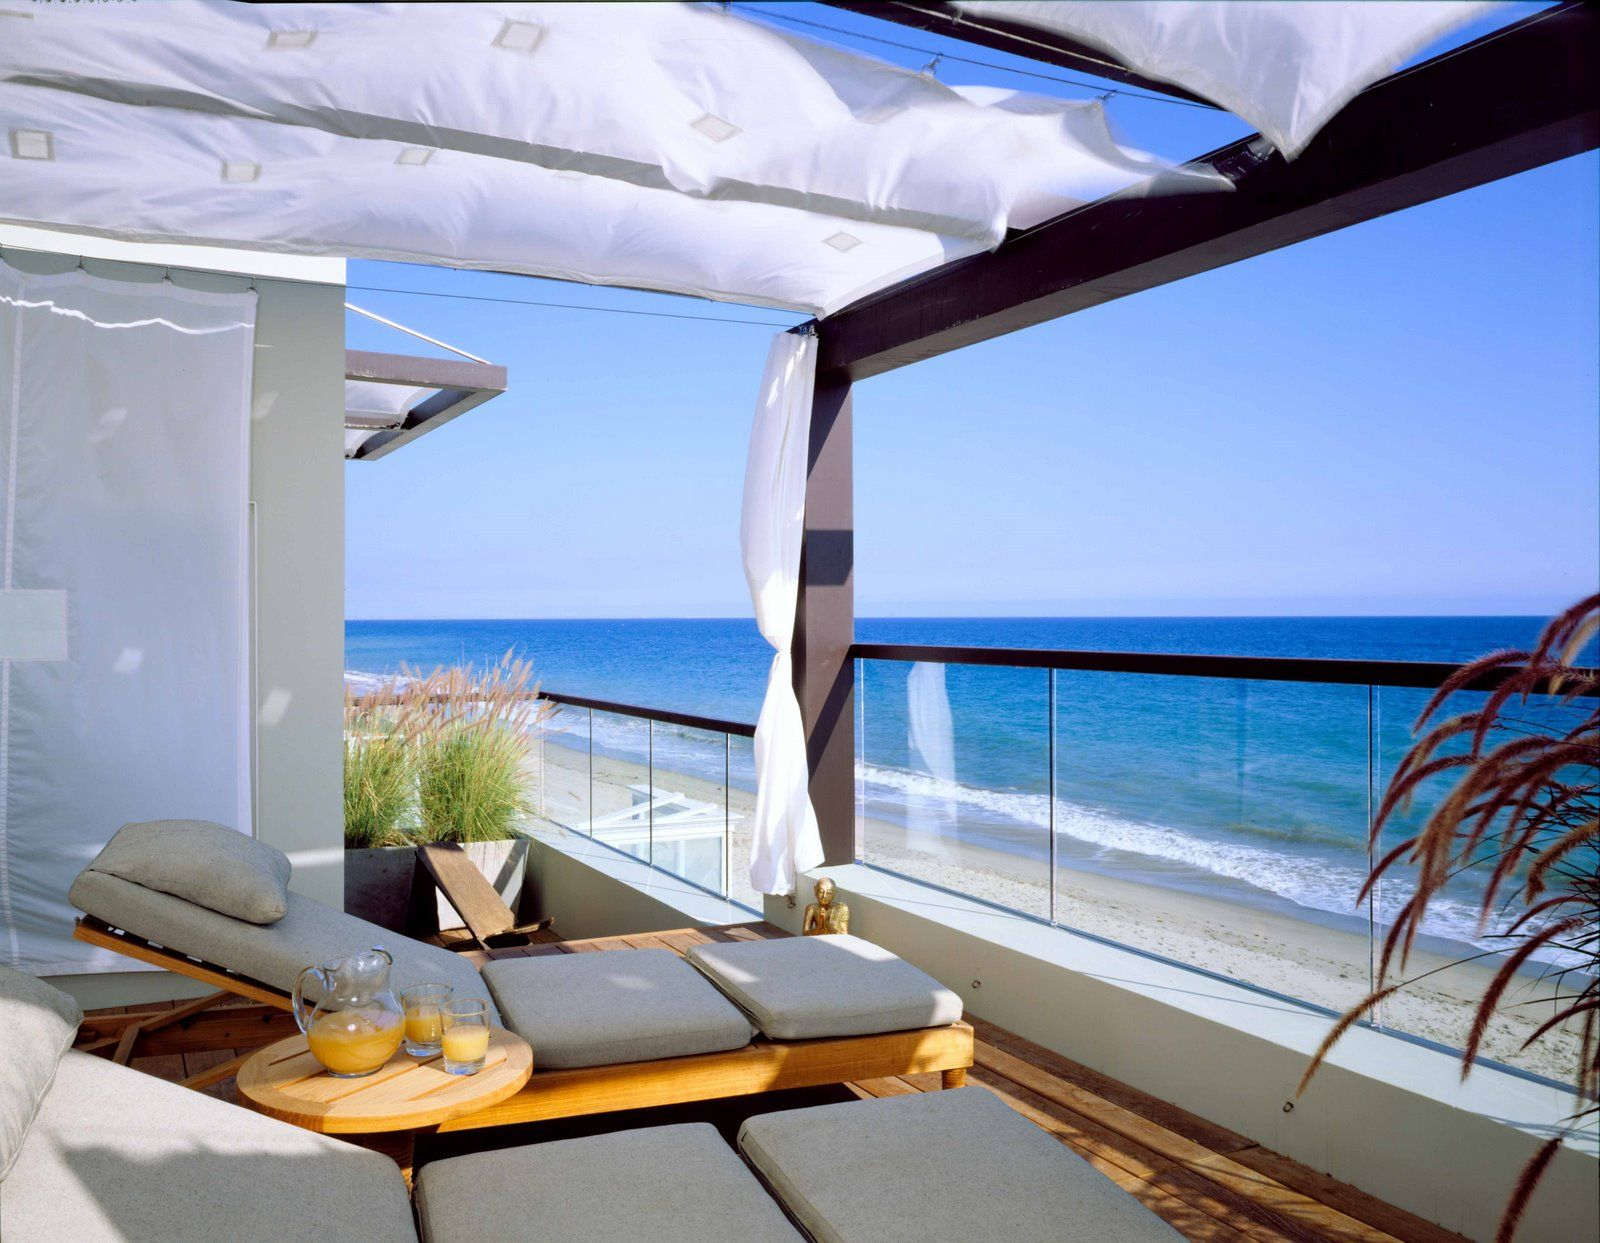 1000+ images about Mid century / modern beach house on Pinterest - ^